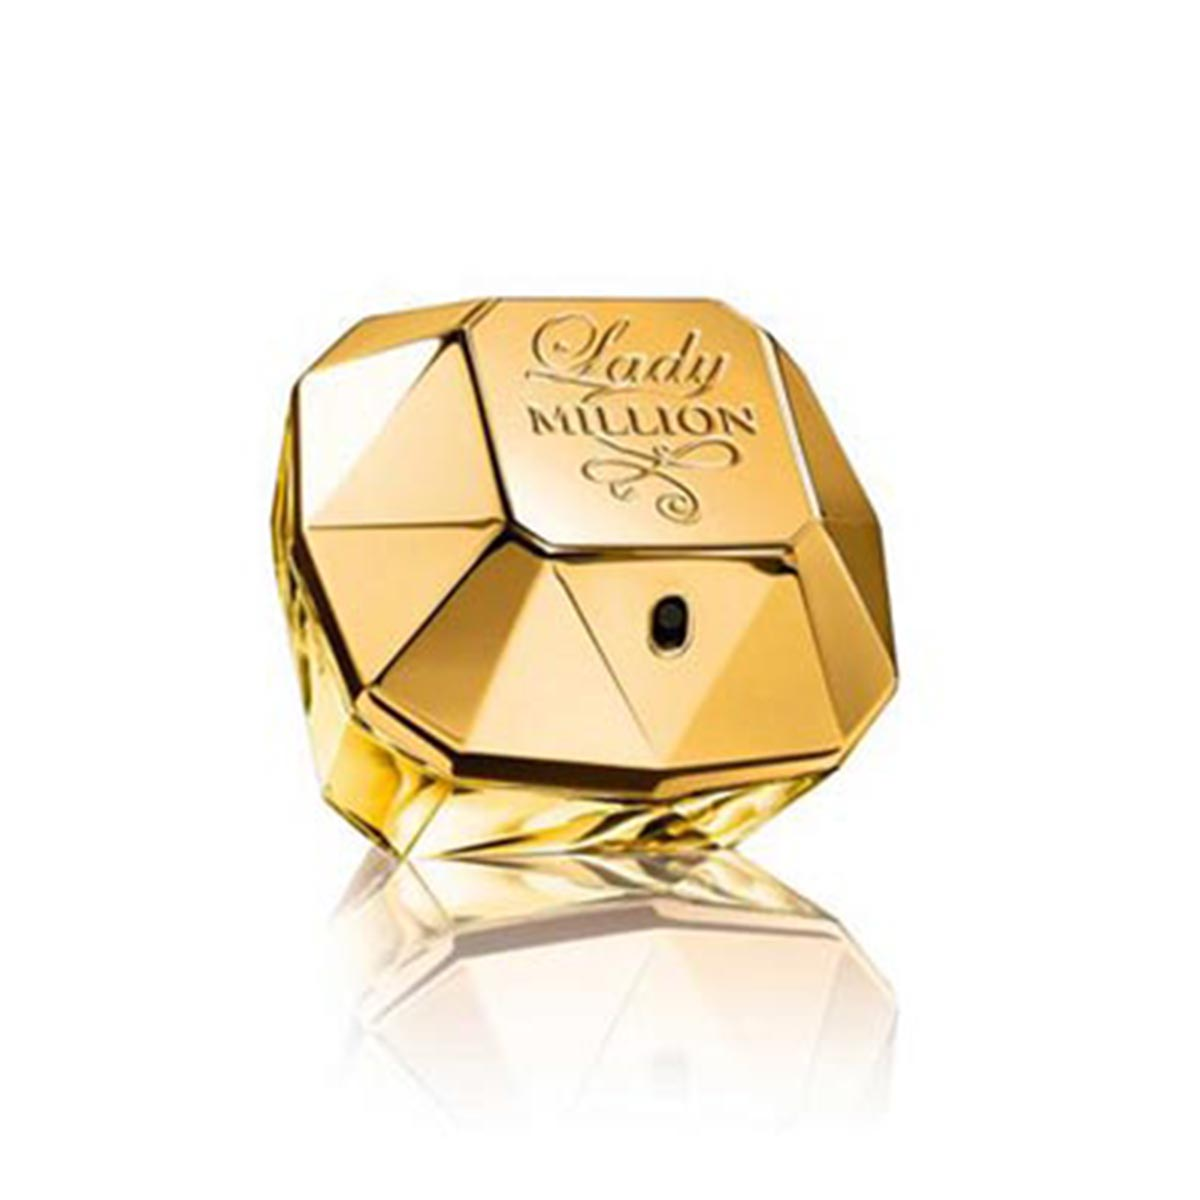 Paco rabanne lady million eau de parfum 50ml vaporizador